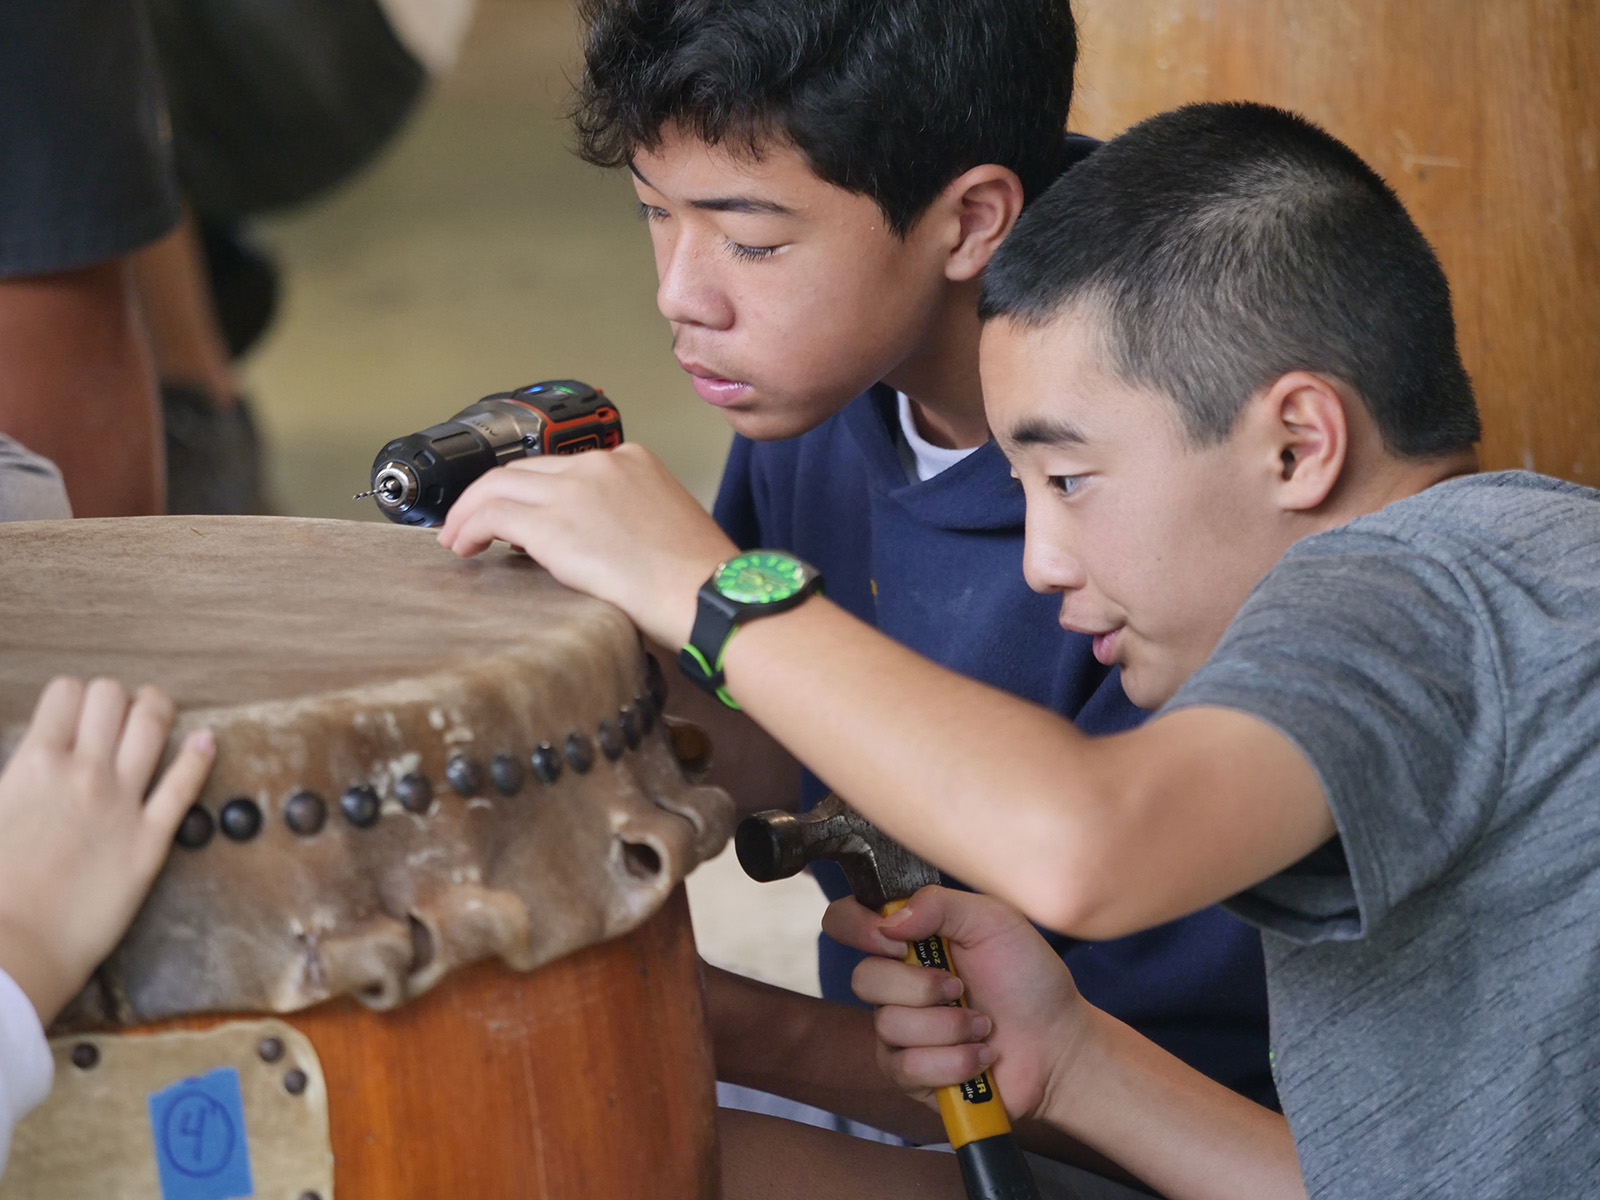 <p>Taiko students Dawson Hose and Blaise Nomitsu hammer small tacks through a thick cowhide once it has dried to secure it onto the wooden drum barrel it has been shaped and stretched to fit. A taiko drum this size uses approximately 200 tacks to hold the skin in place.</p>